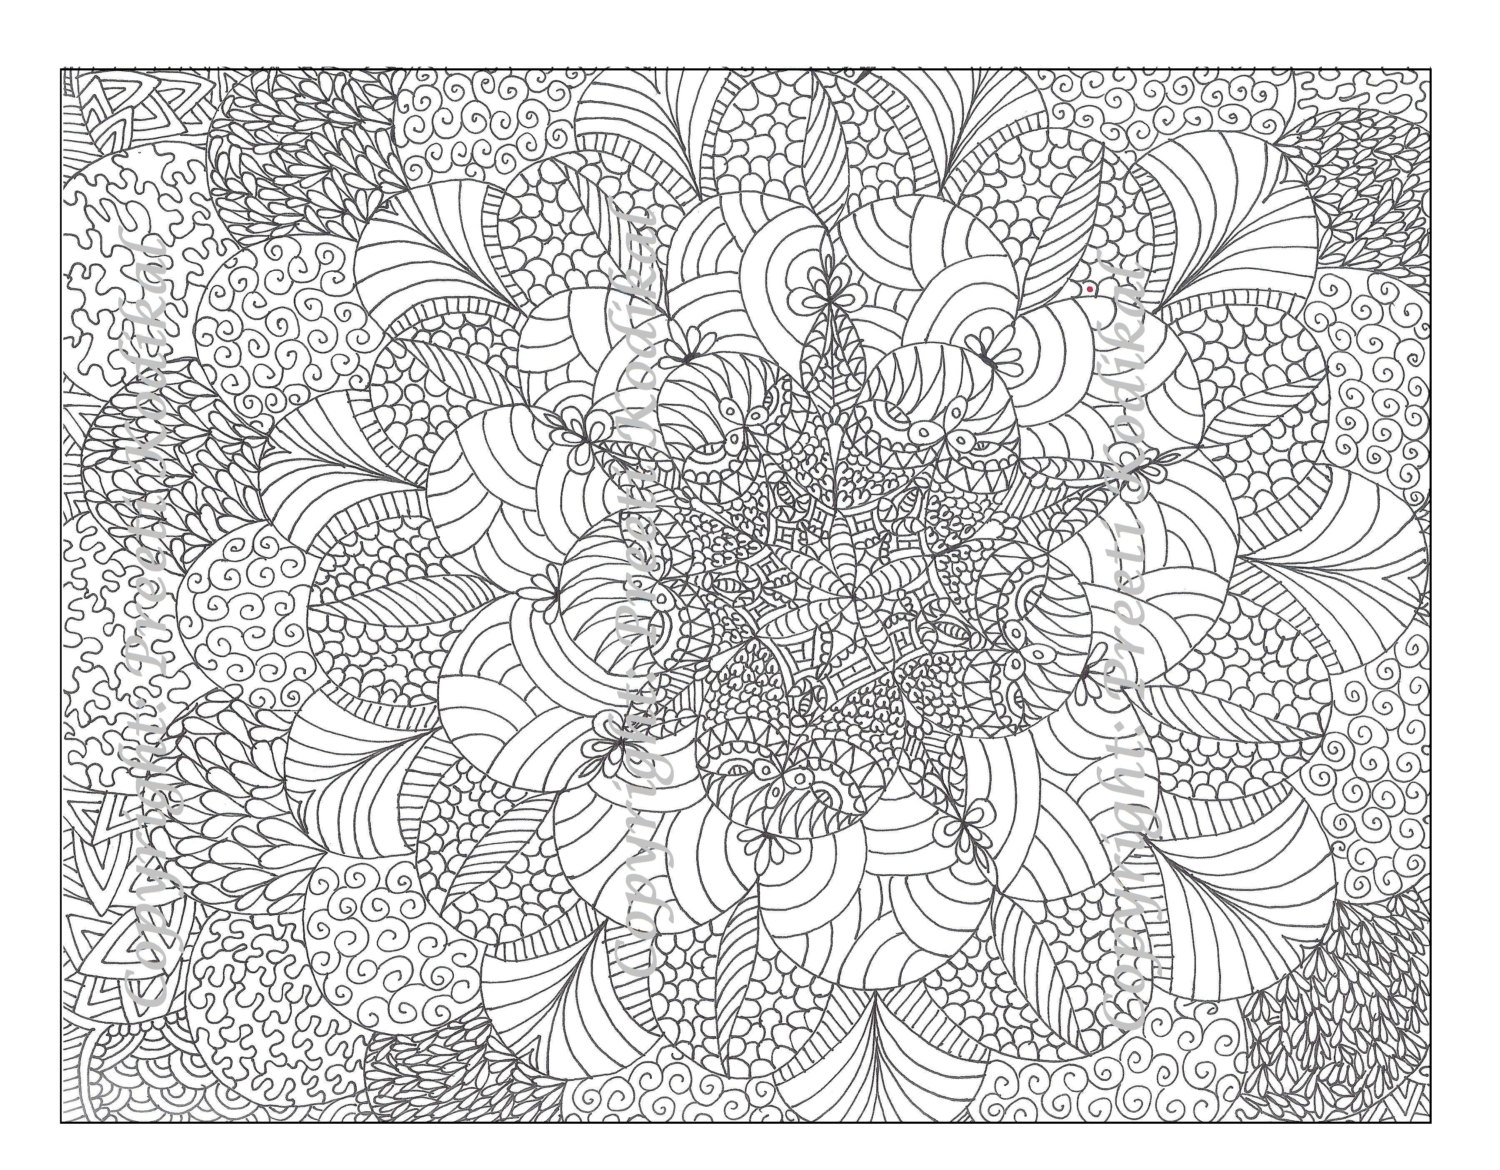 detailed coloring pages printable - Intricate Mandalas Coloring Pages